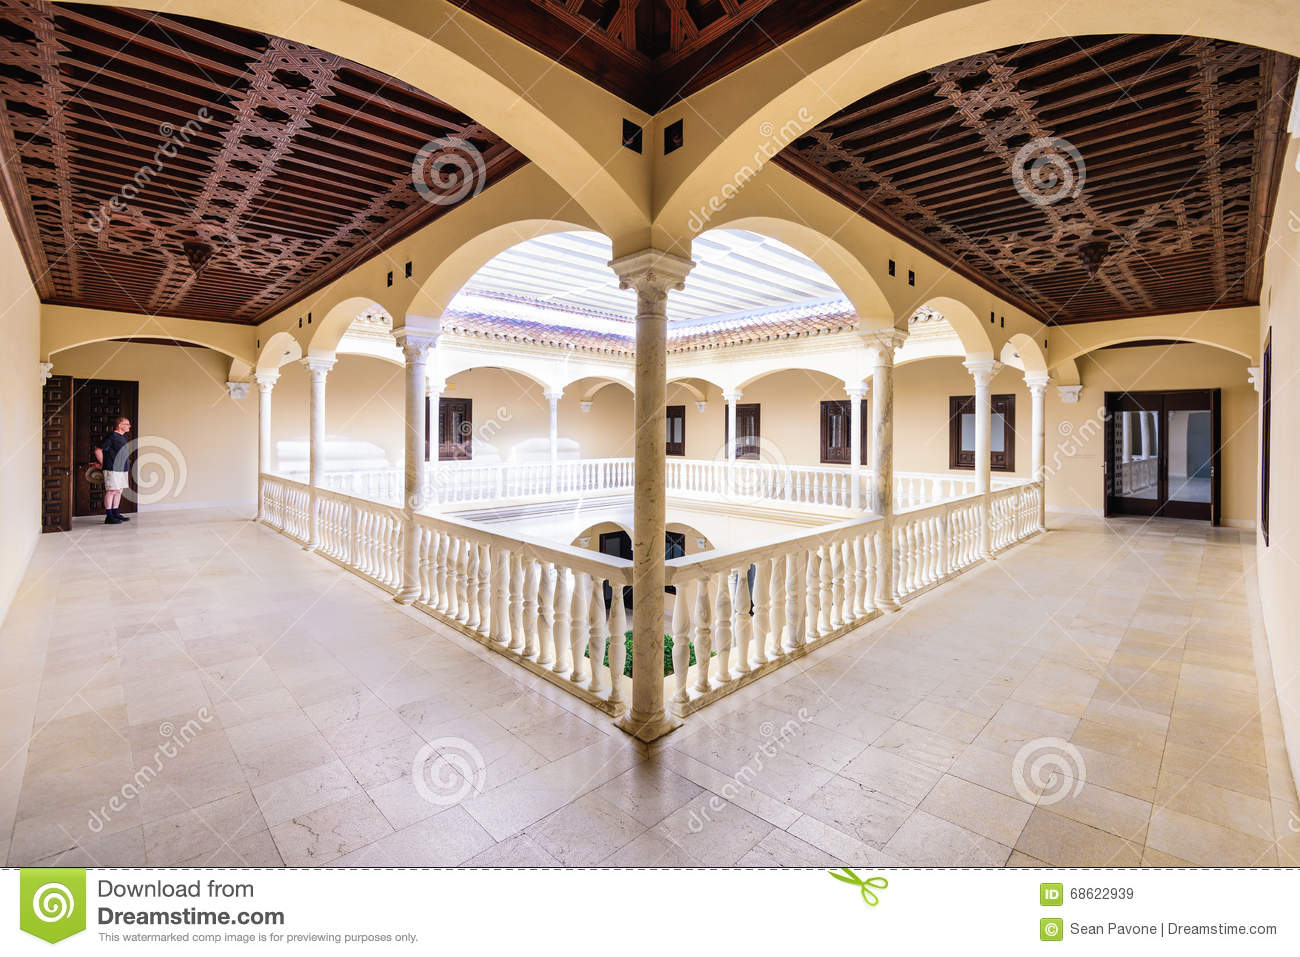 Museo Picasso Malaga.Pablo Picasso Museum Editorial Stock Image Image Of Historic 68622939